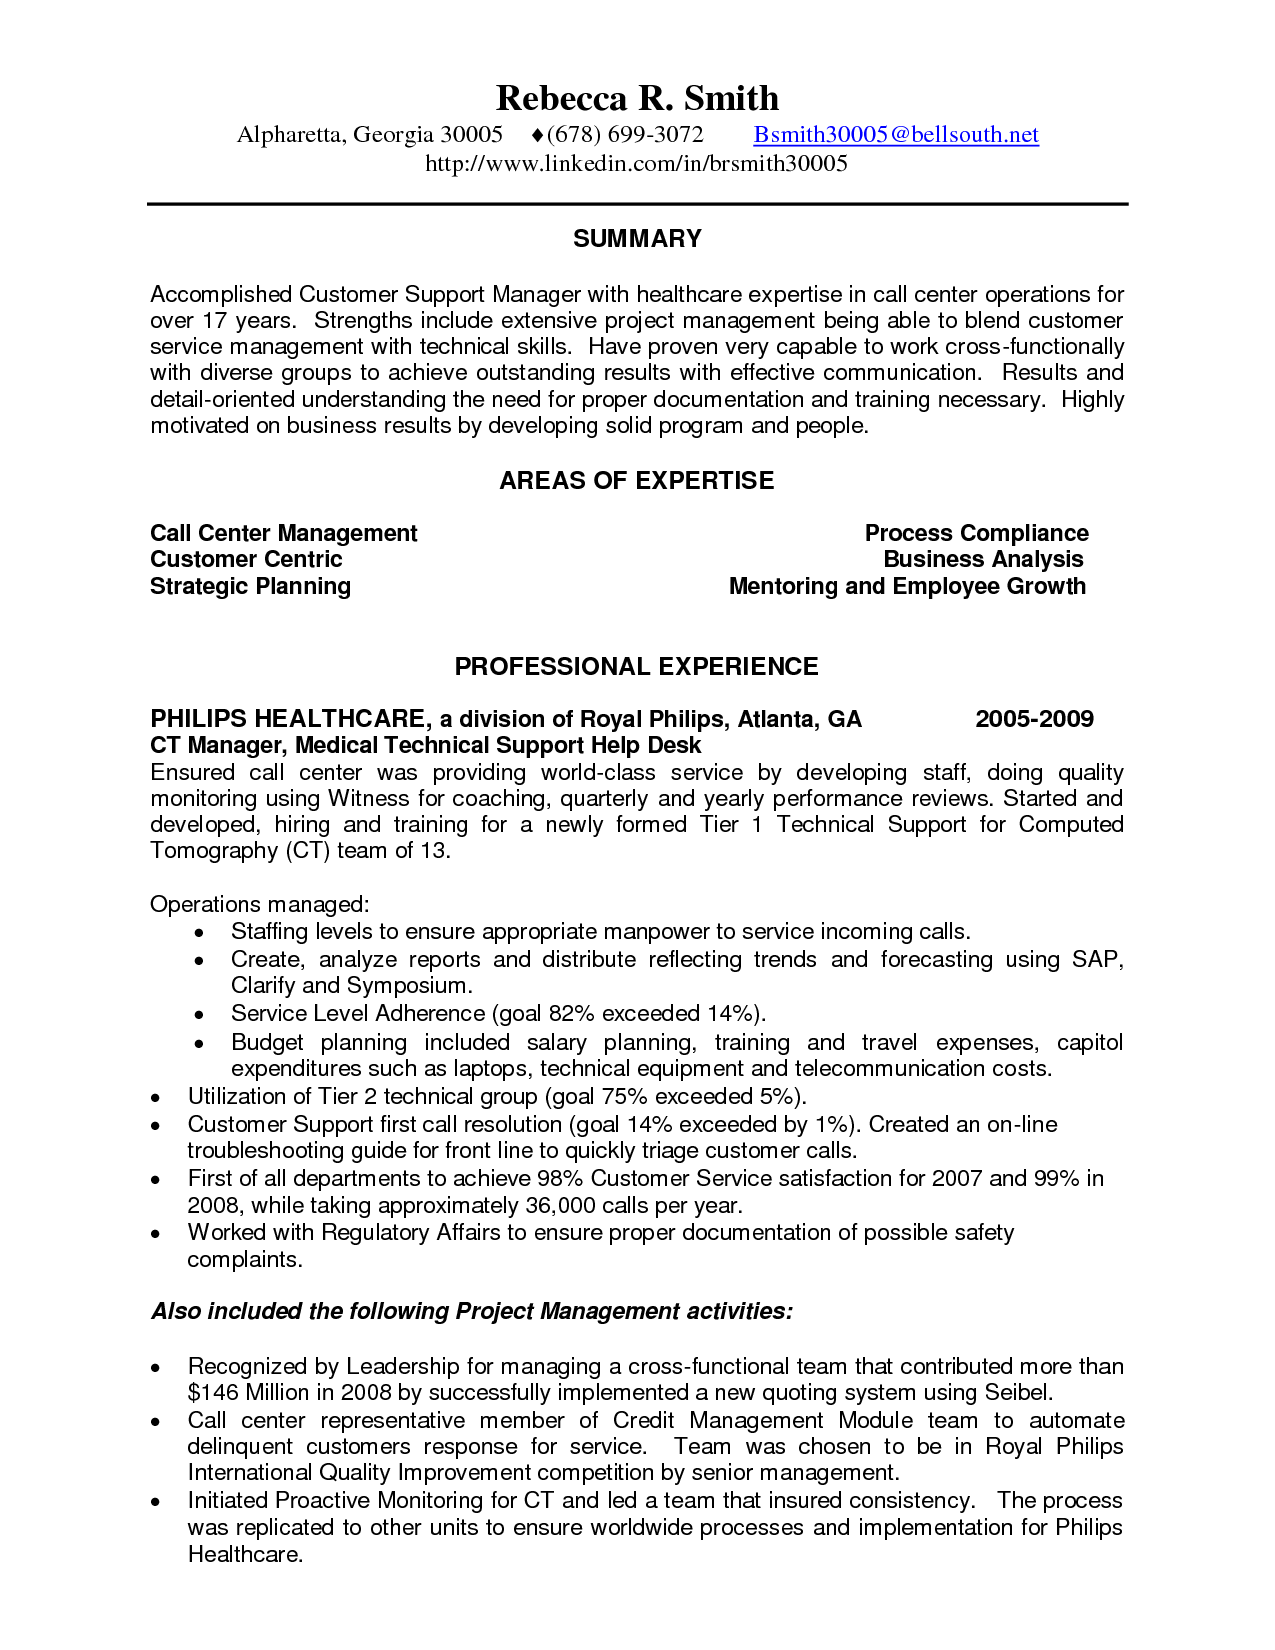 Resume Skills Summary Customer Service Examples Doc  Home Design